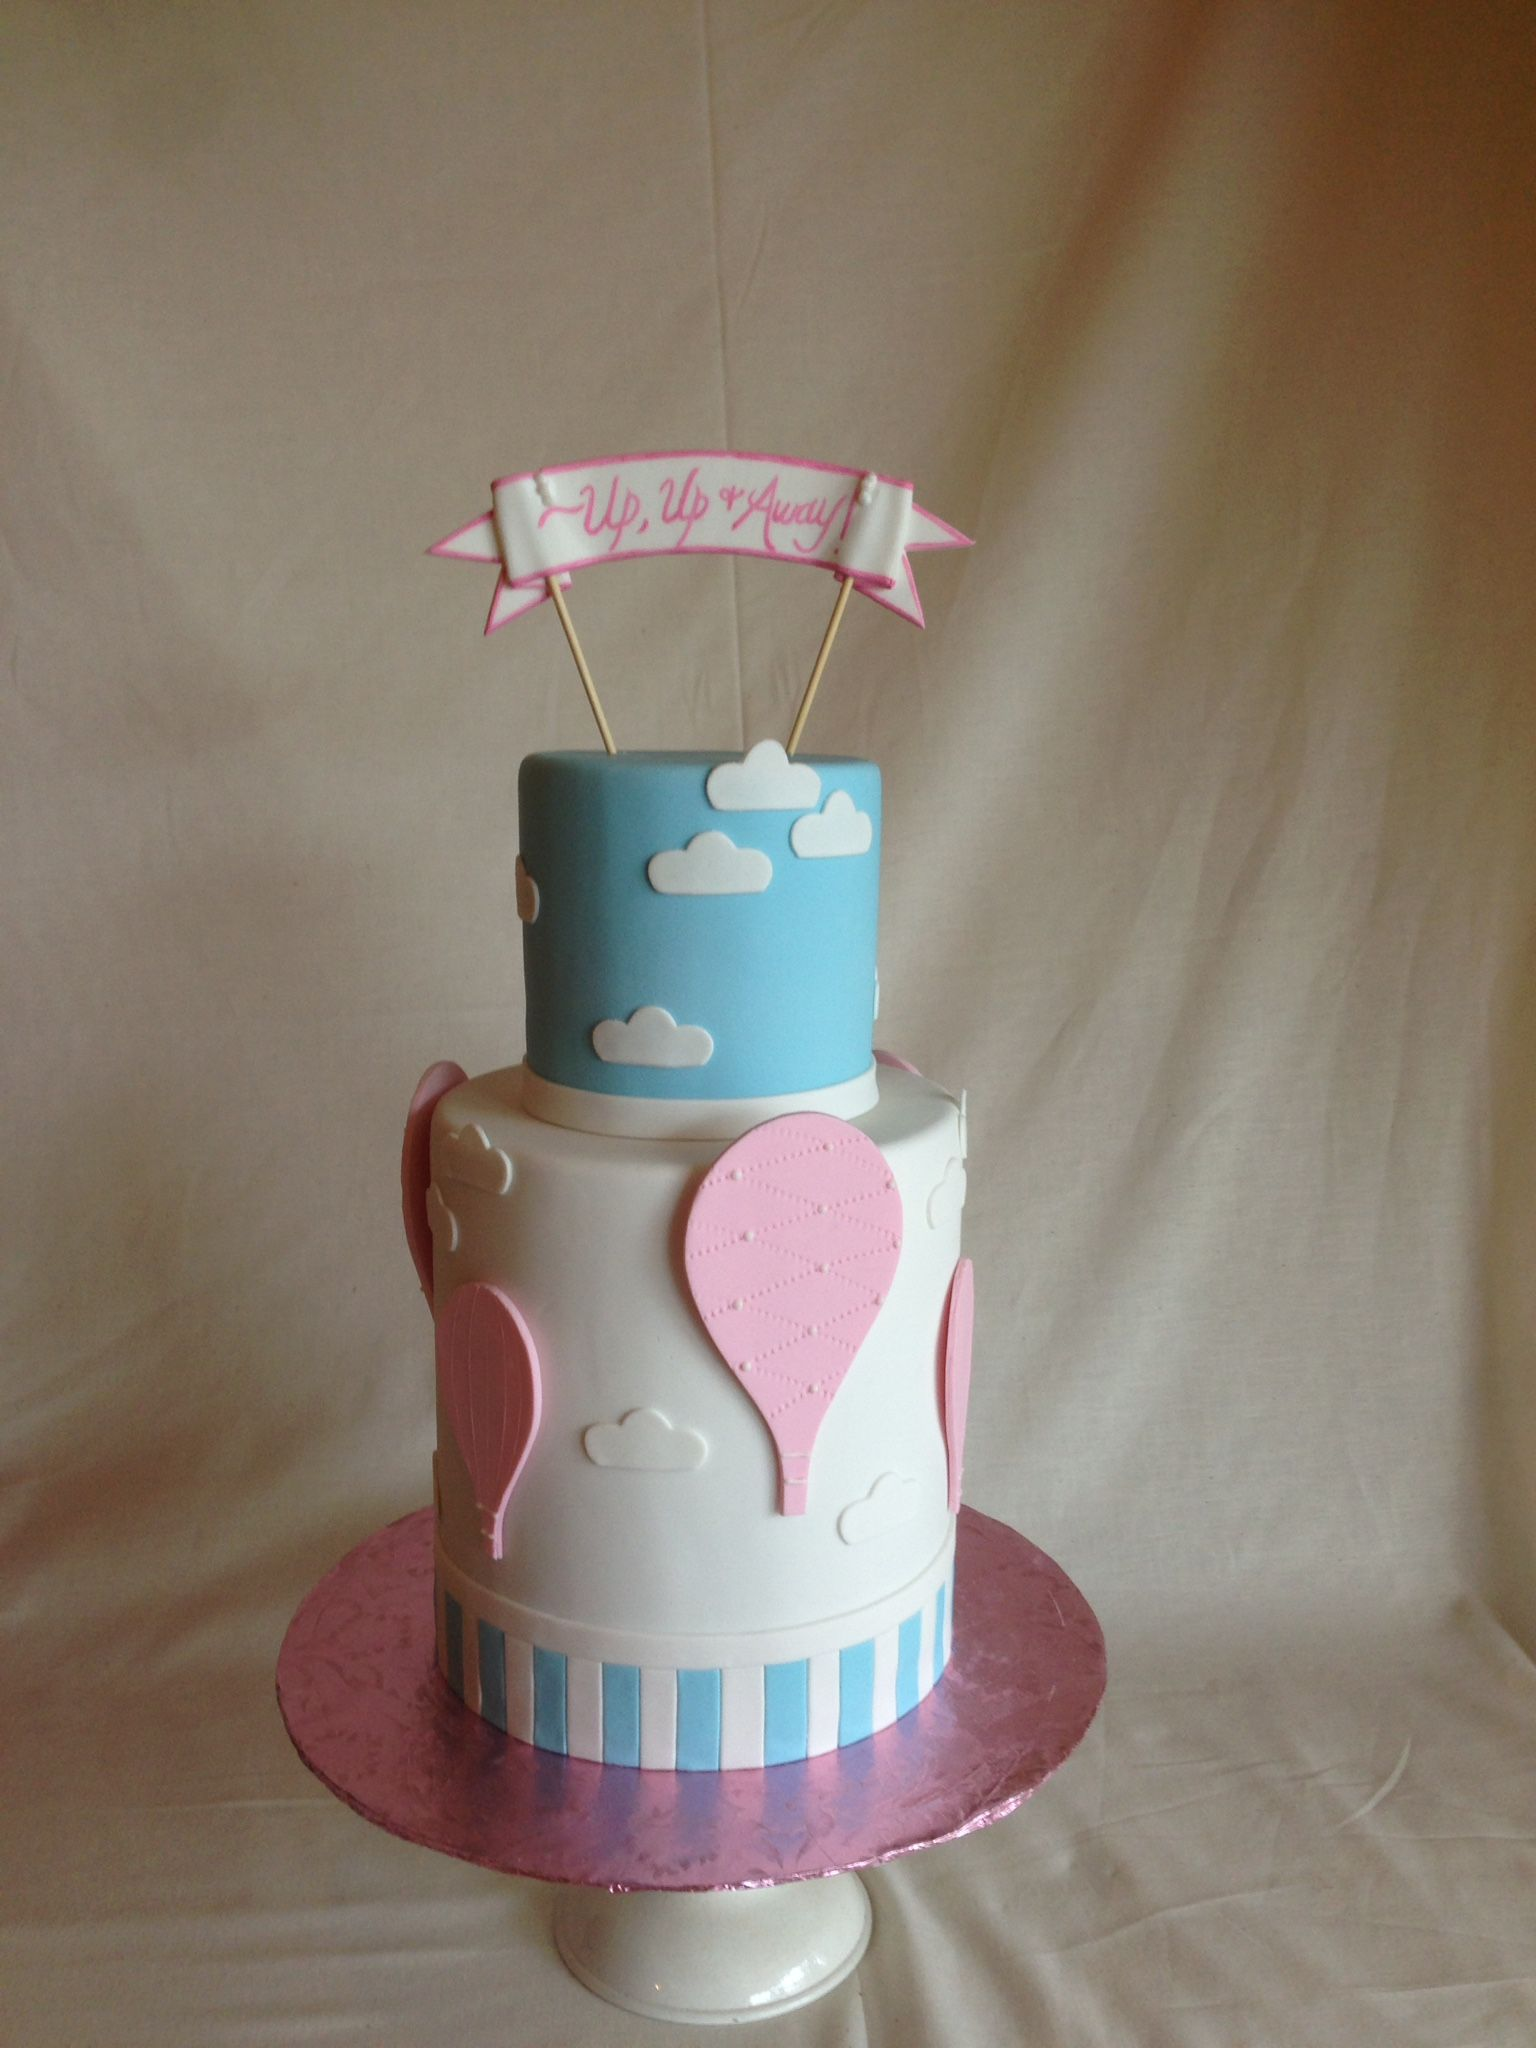 Up Up And Away- Baby Shower Cake- Hot Air Ballon